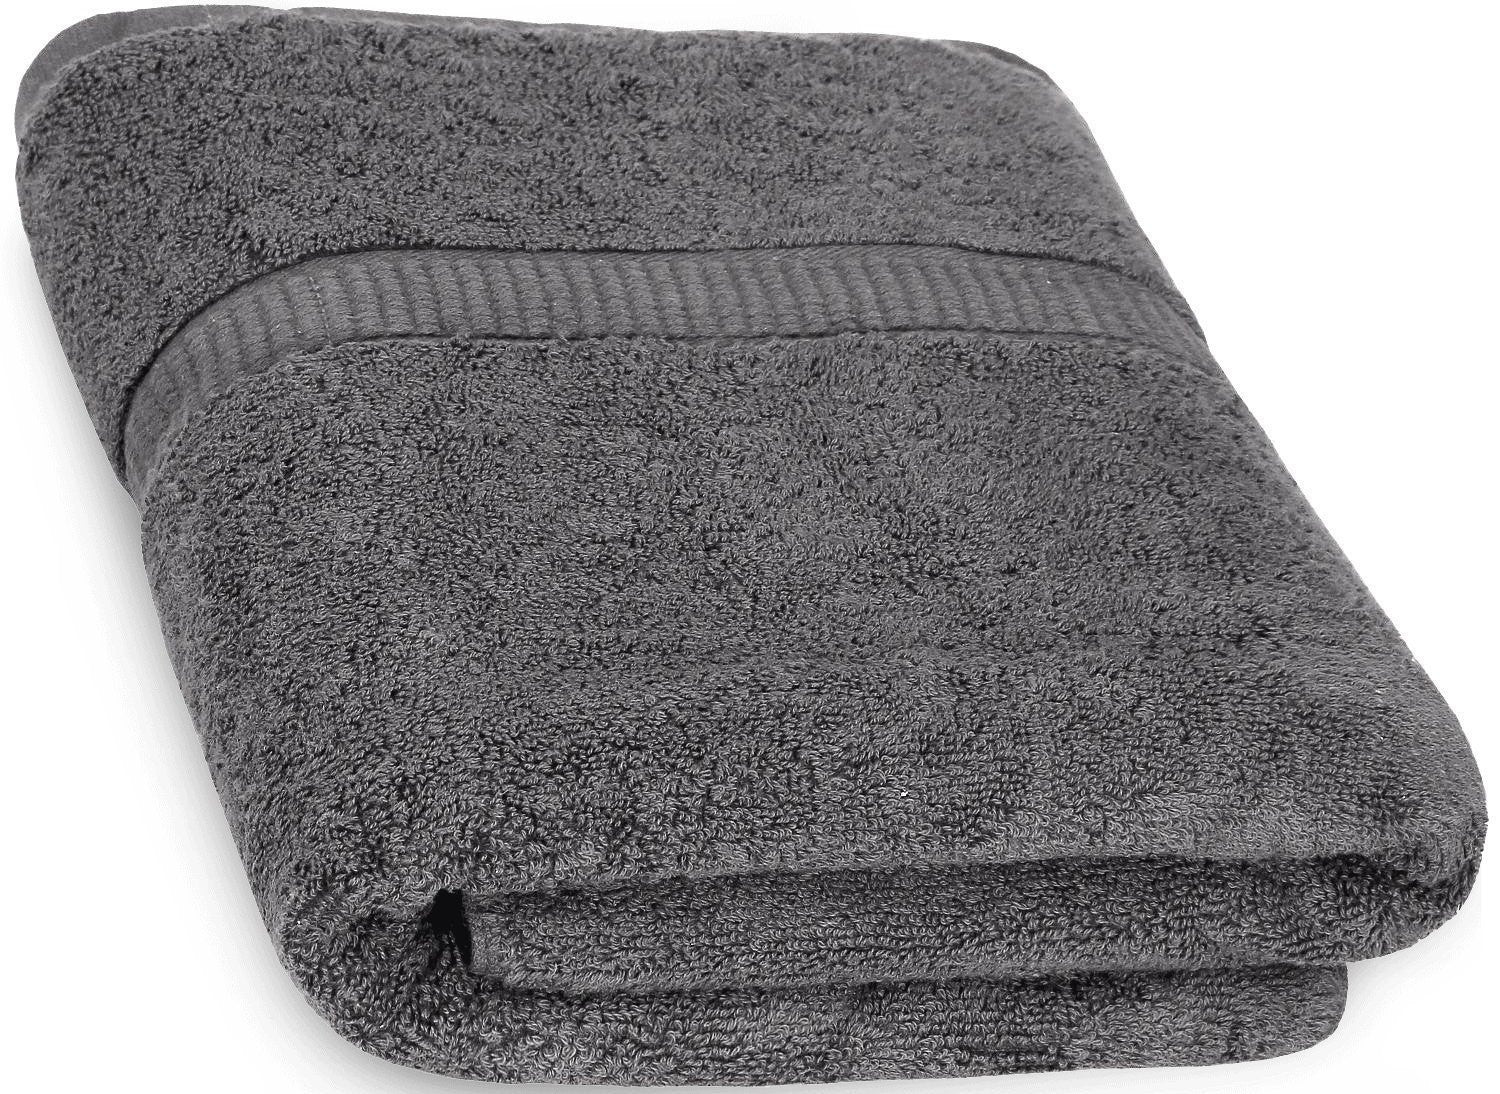 Luxury Bath Sheet Towel (Grey; 35 x 70 Inch)